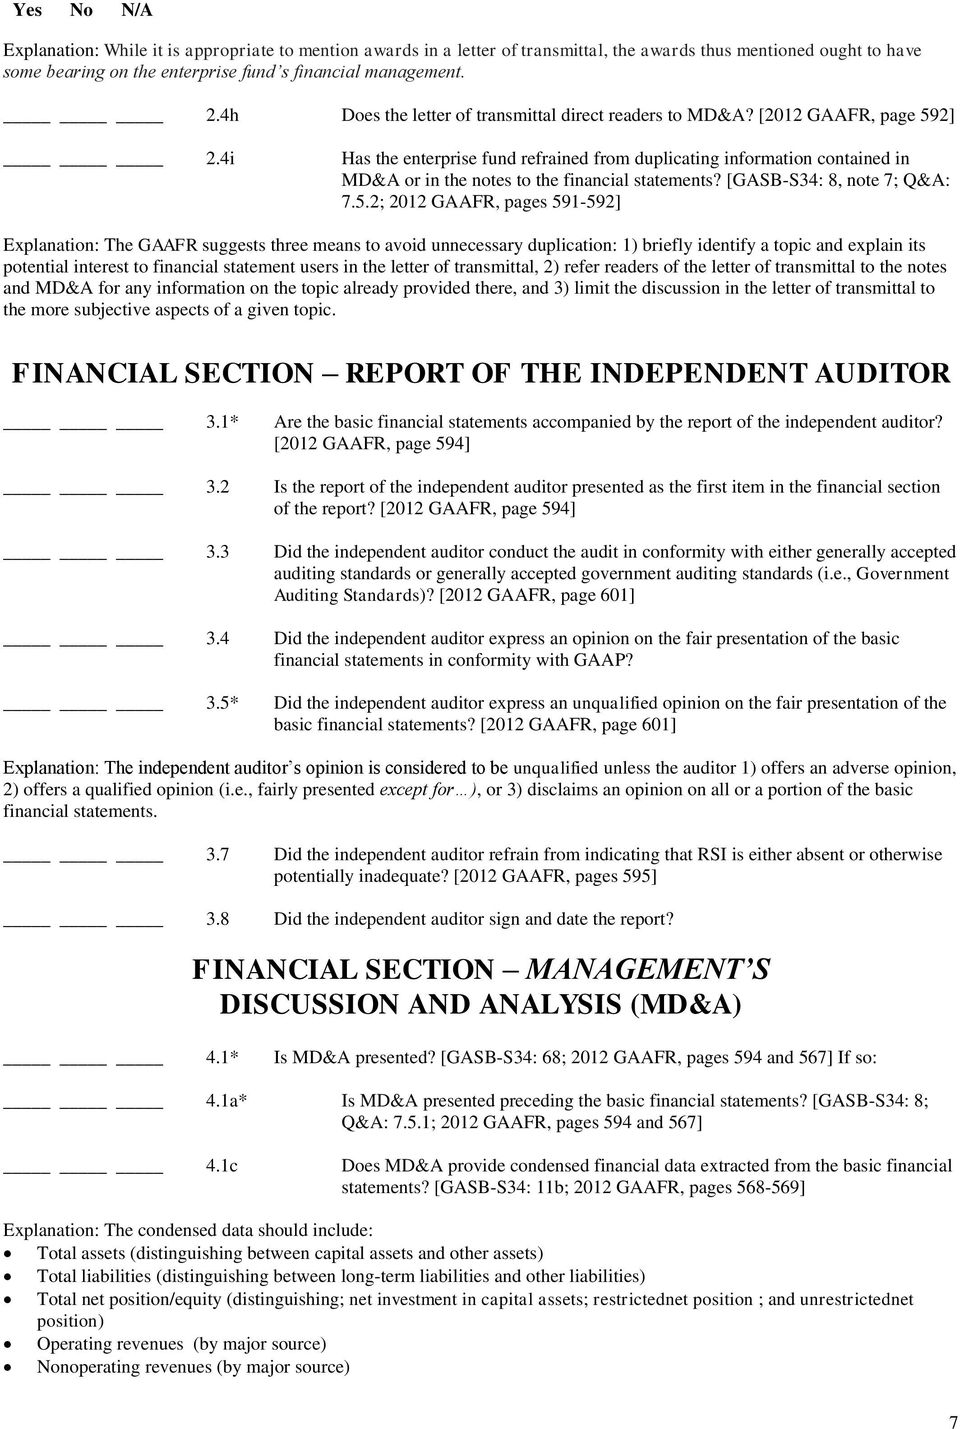 4i Has the enterprise fund refrained from duplicating information contained in MD&A or in the notes to the financial statements? [GASB-S34: 8, note 7; Q&A: 7.5.